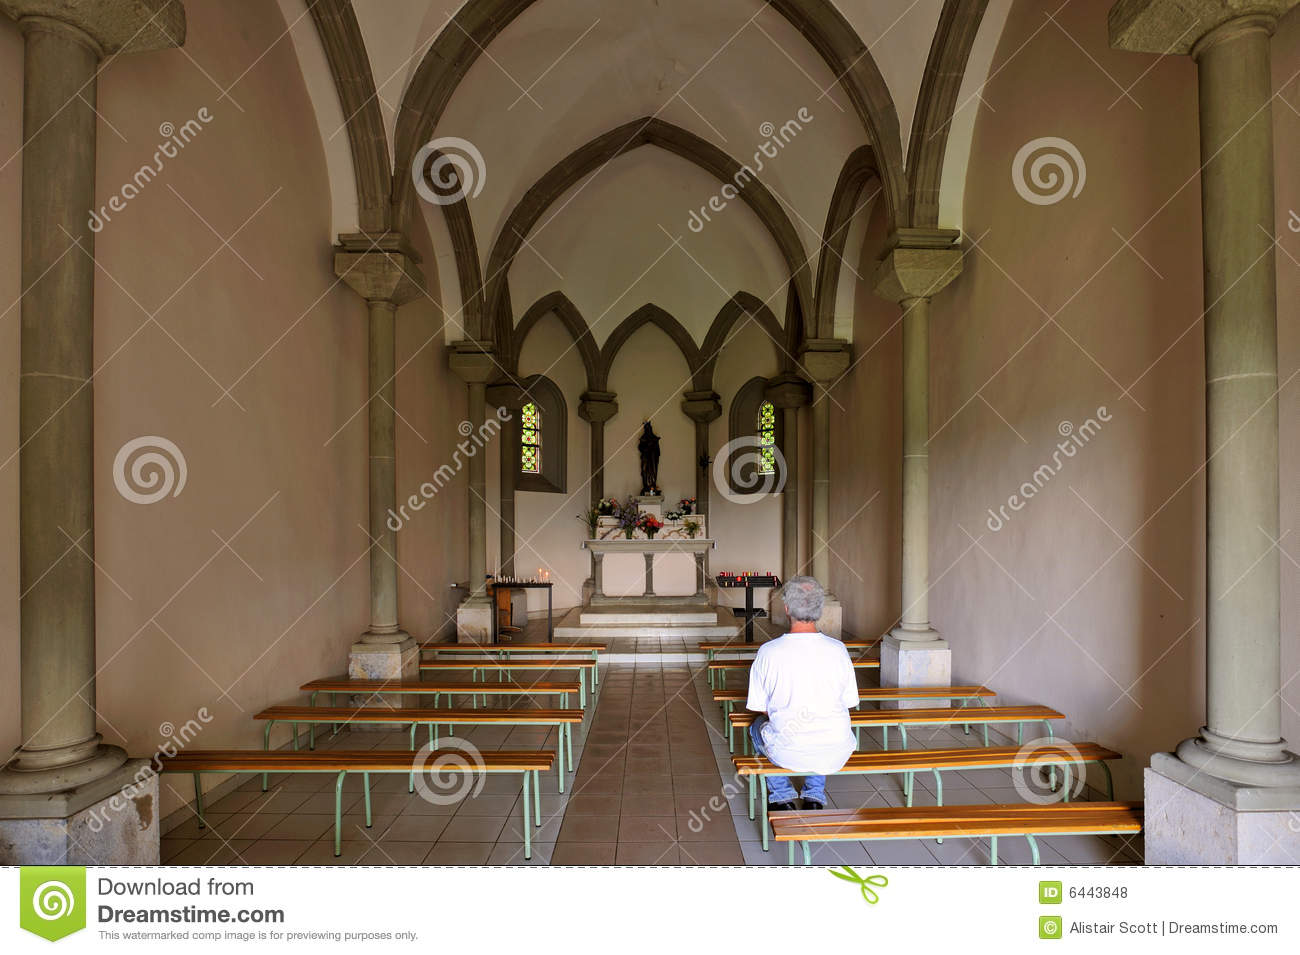 Inside a small chapel with a single worshipper sitting on a bench.